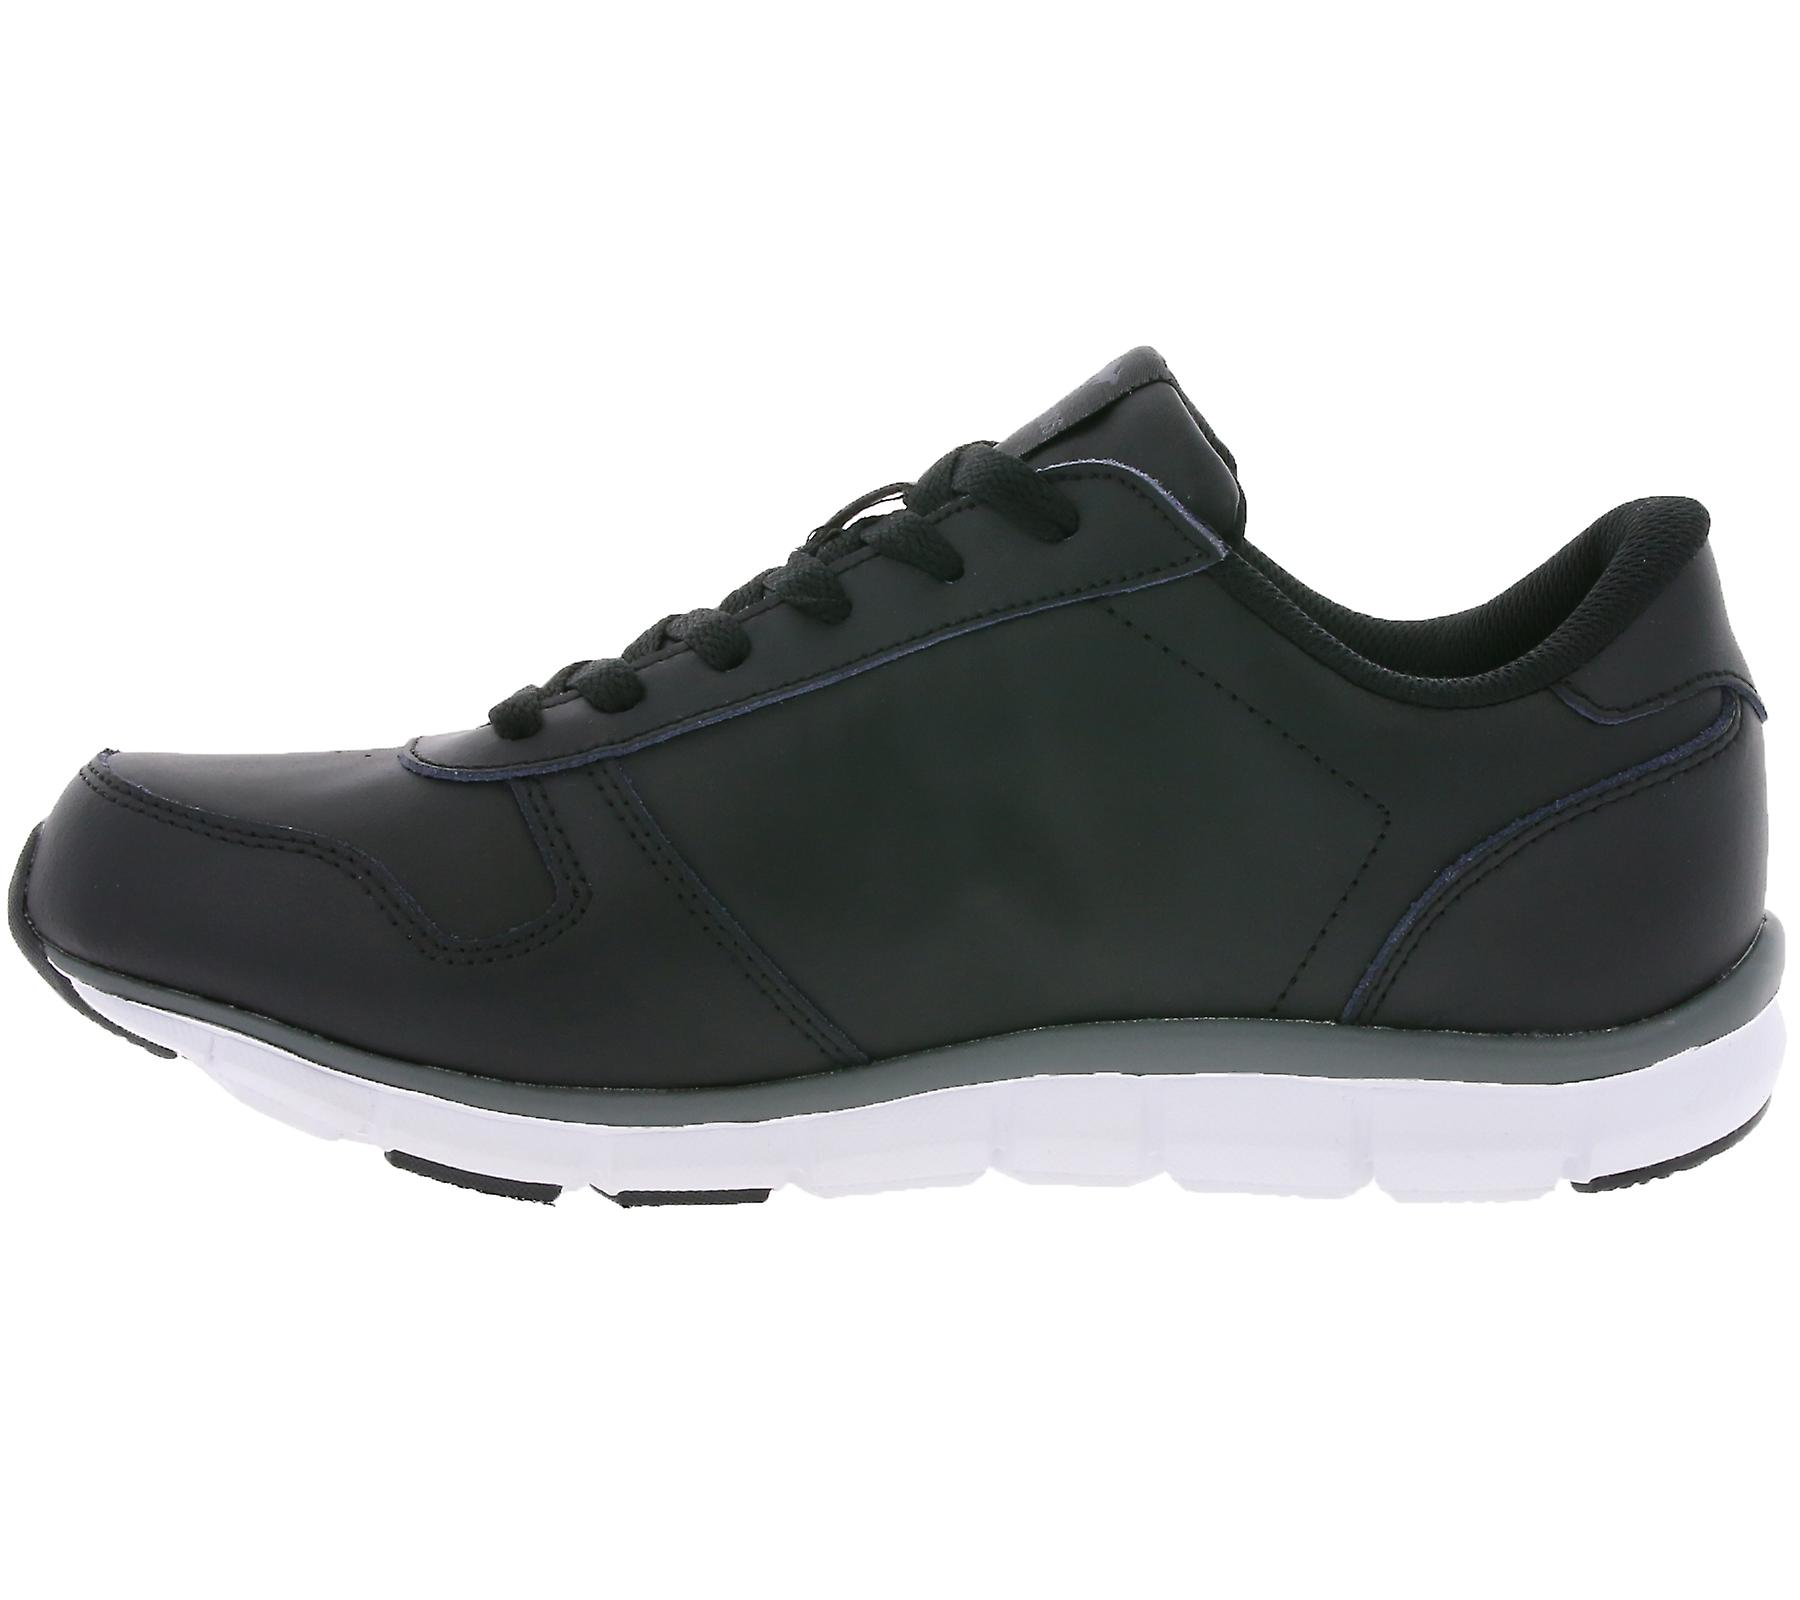 BlueRun of with Pocket K black 700b sneaker KangaROOS q1ESw5xE